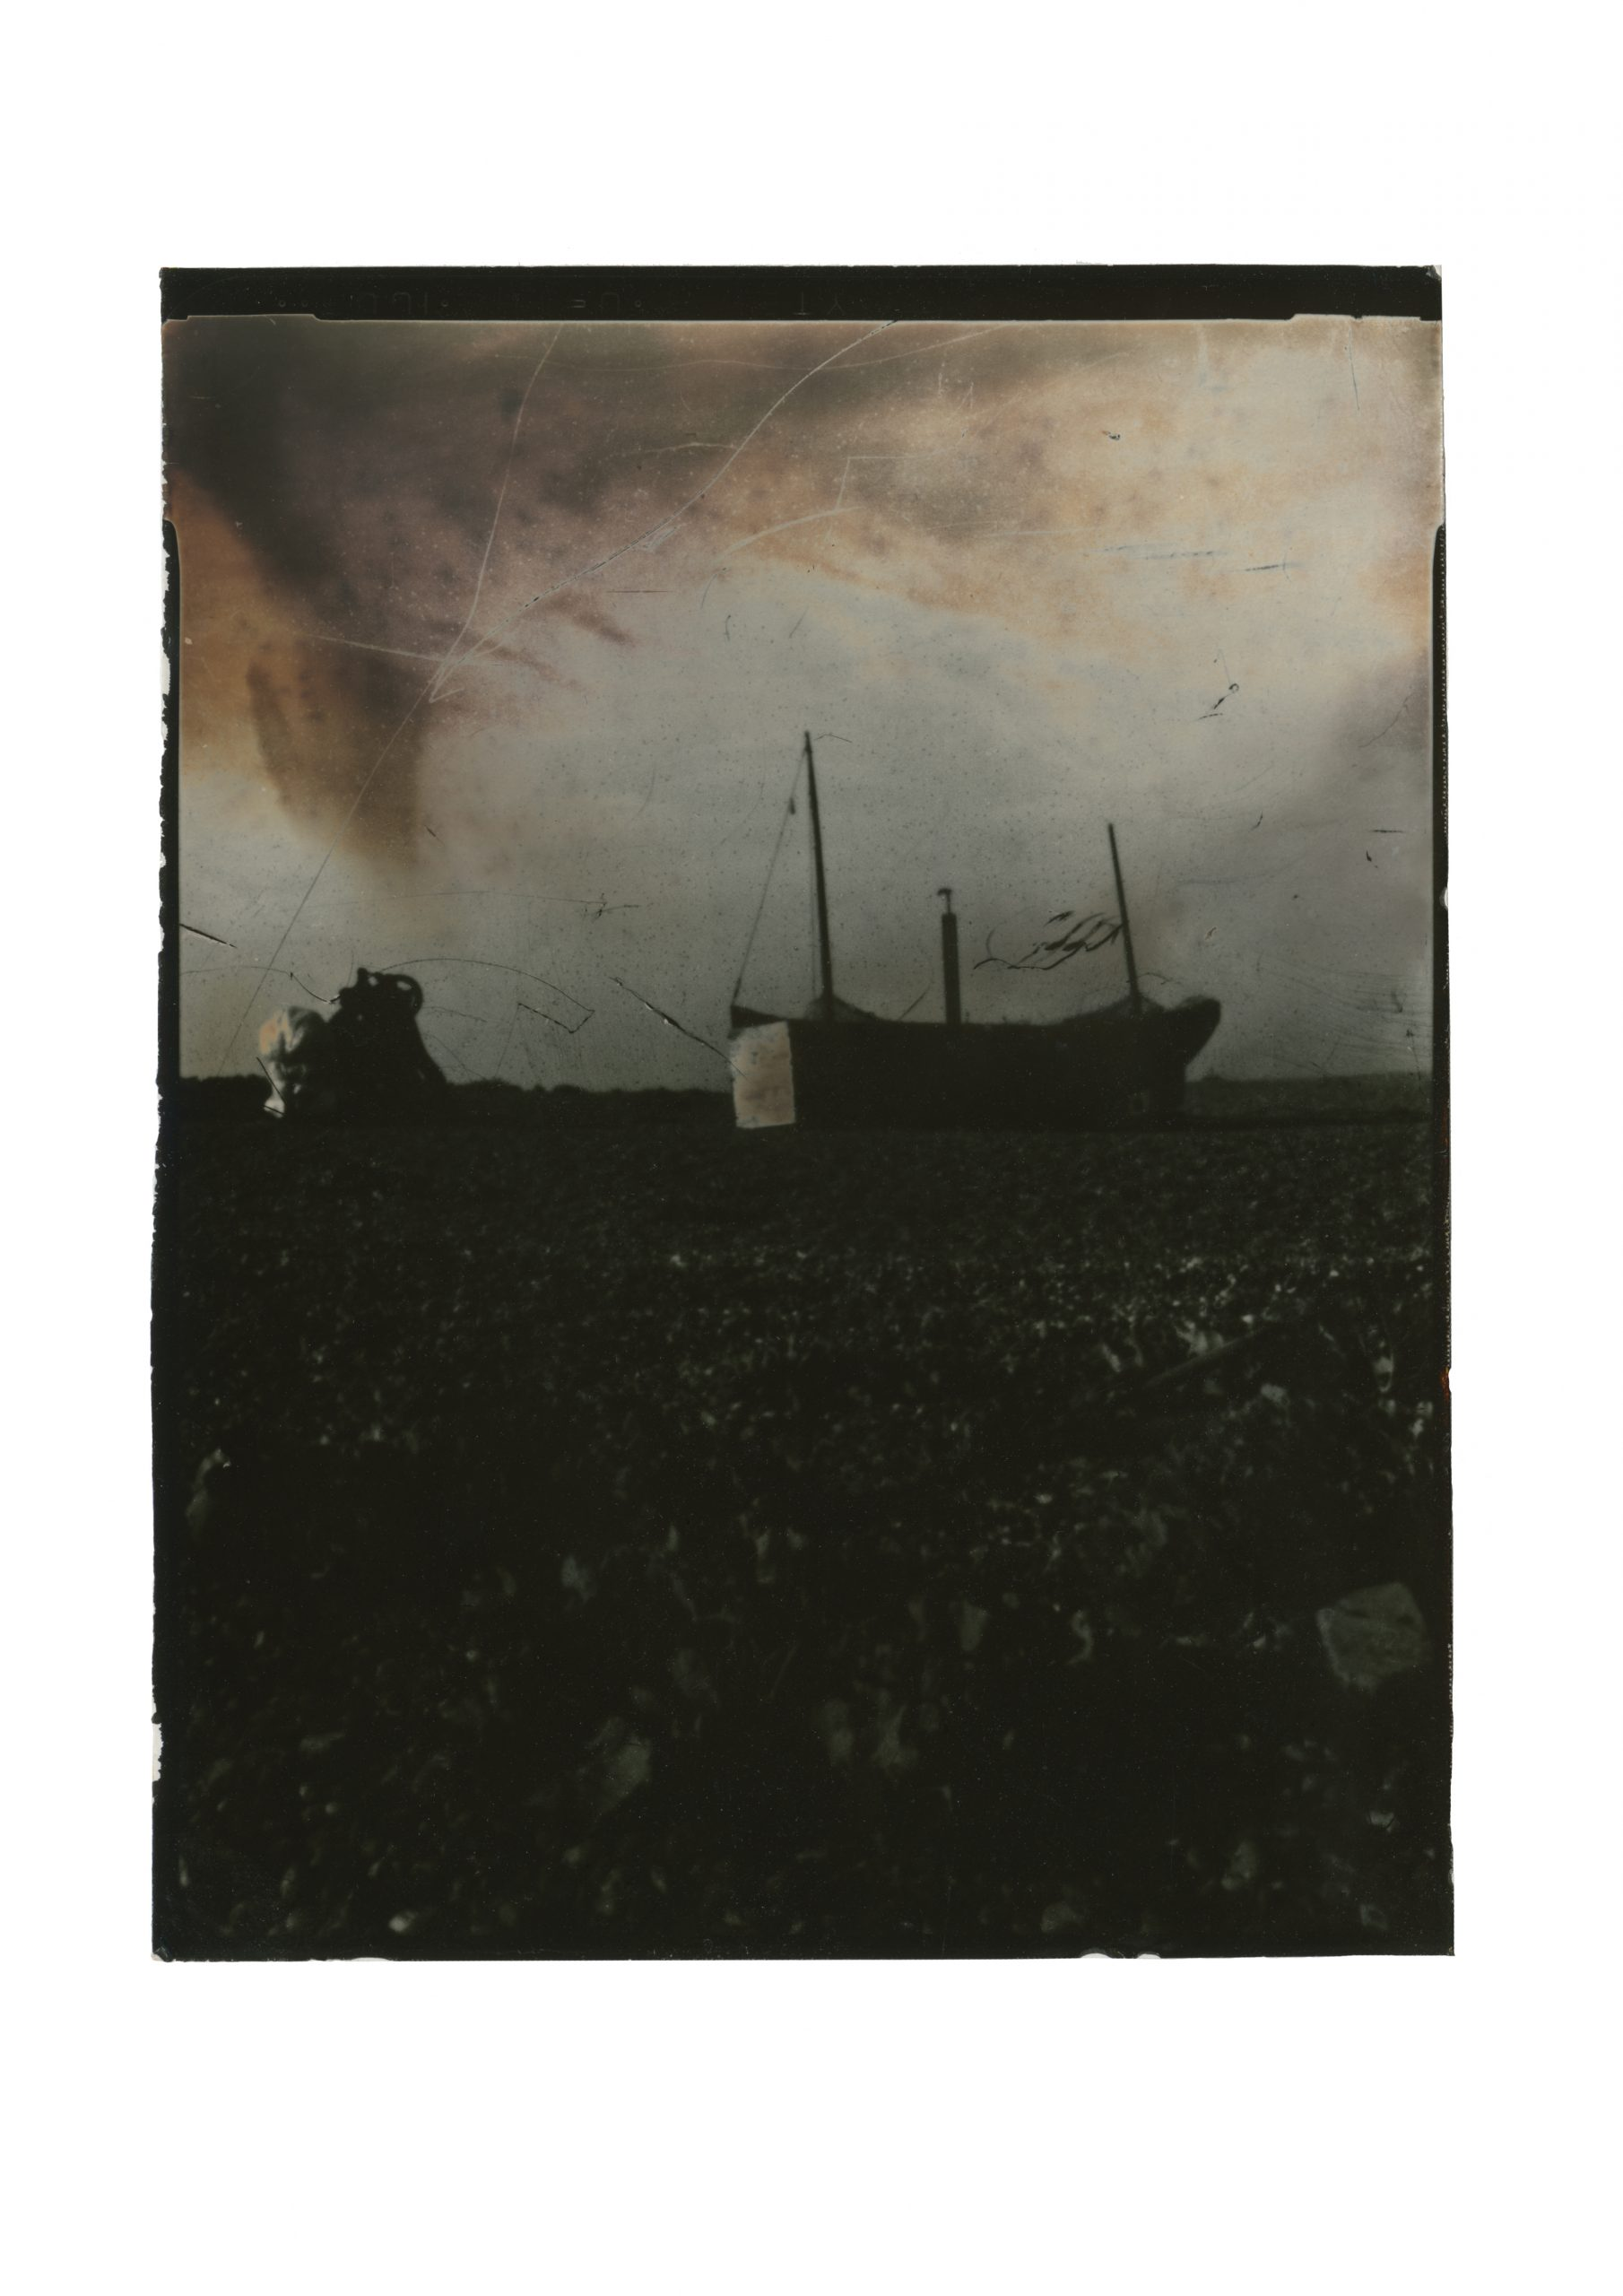 old fishing boat on horizon line as an almost silhouette lower half of the image dark shingle sky is like rusted metal with sweeping lines